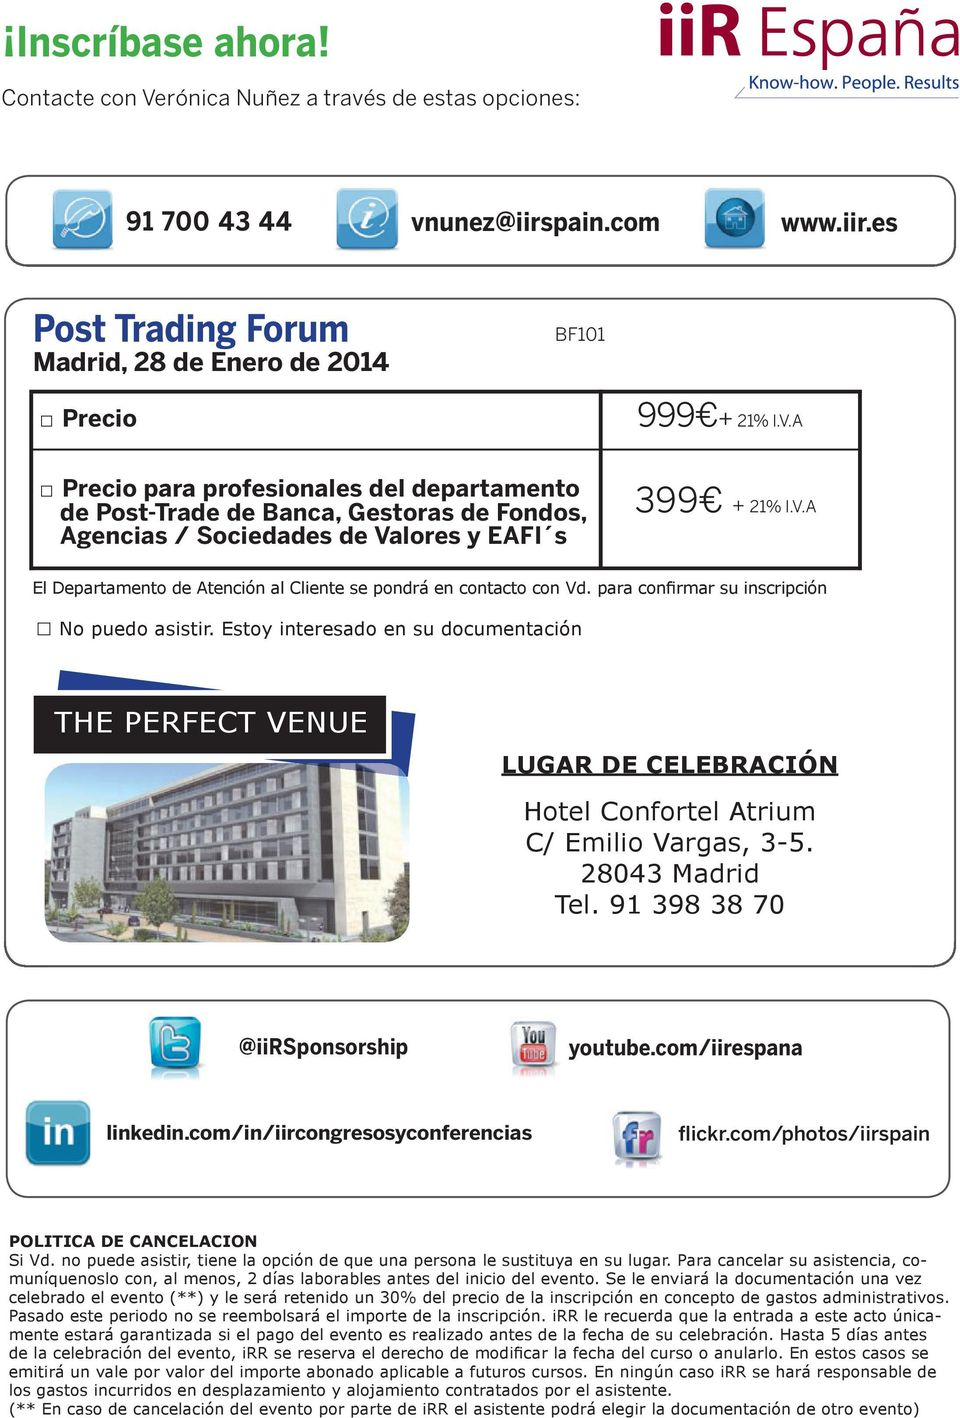 Estoy interesado en su documentación THE PERFECT VENUE LUGAR DE CELEBRACIÓN Hotel Confortel Atrium C/ Emilio Vargas, 3-5. 28043 Madrid Tel. 91 398 38 70 @iirsponsorship youtube.com/iirespana linkedin.